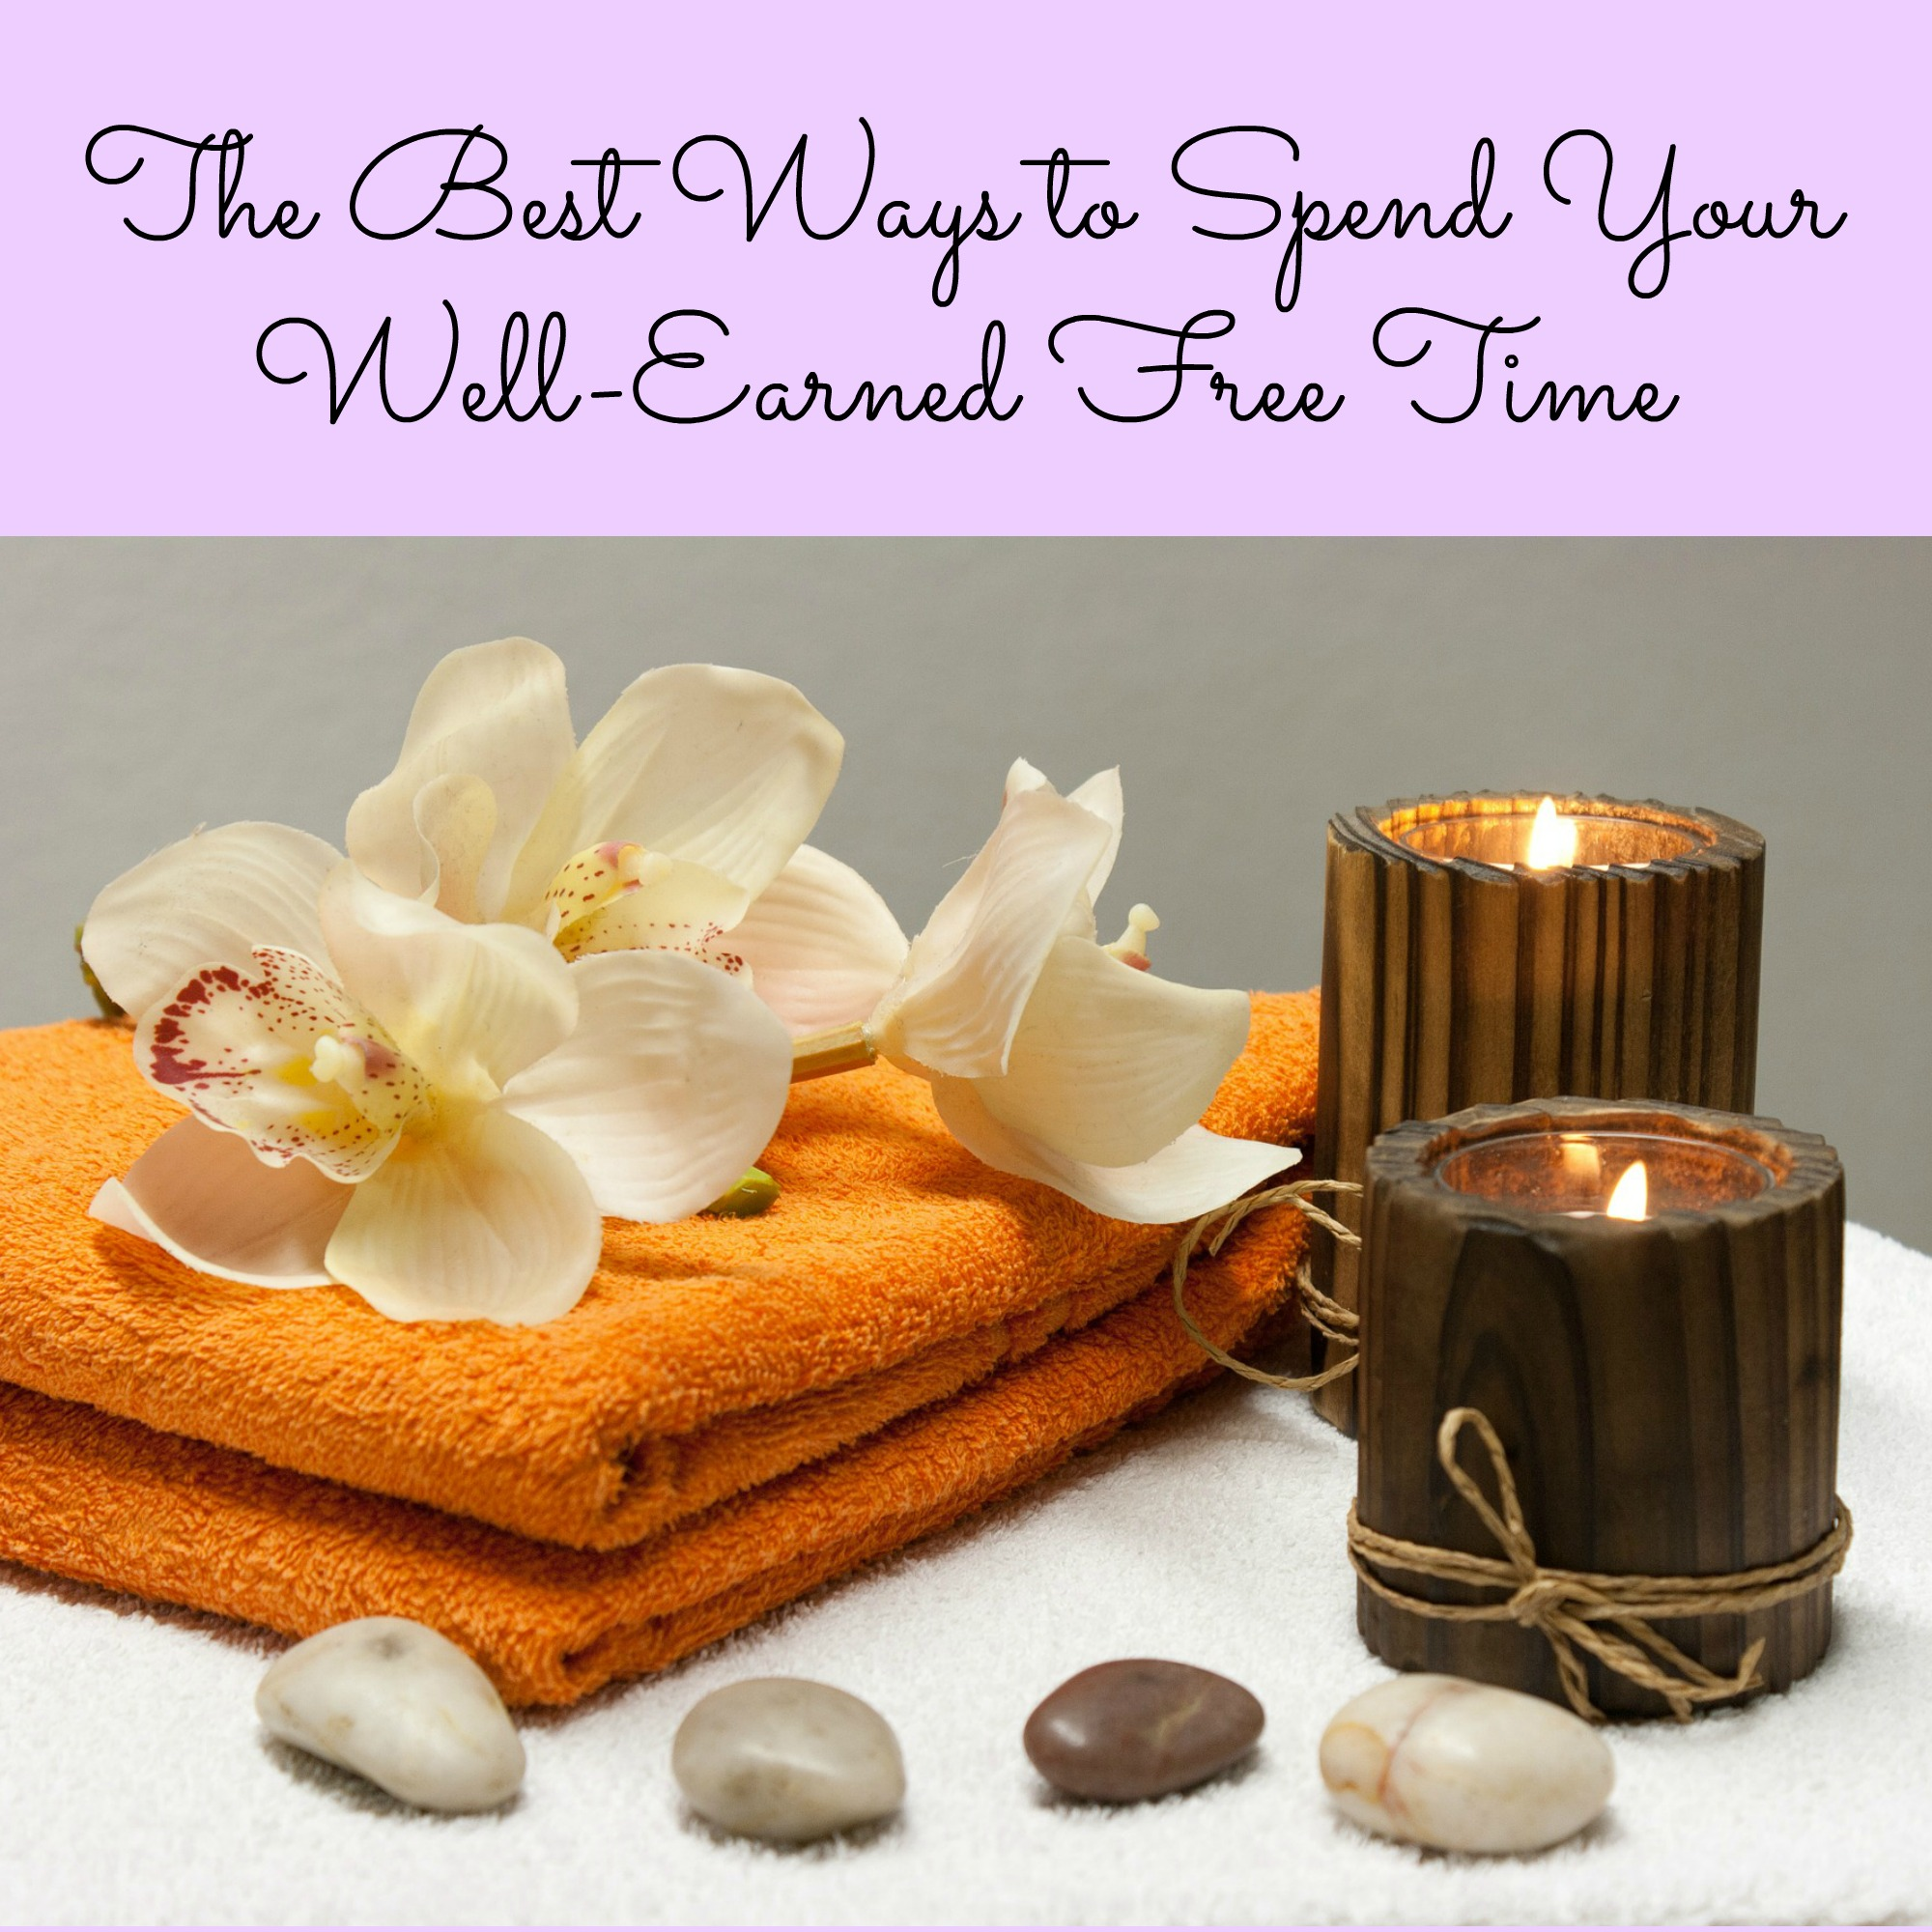 The Best Ways to Spend Your Well-Earned Free Time